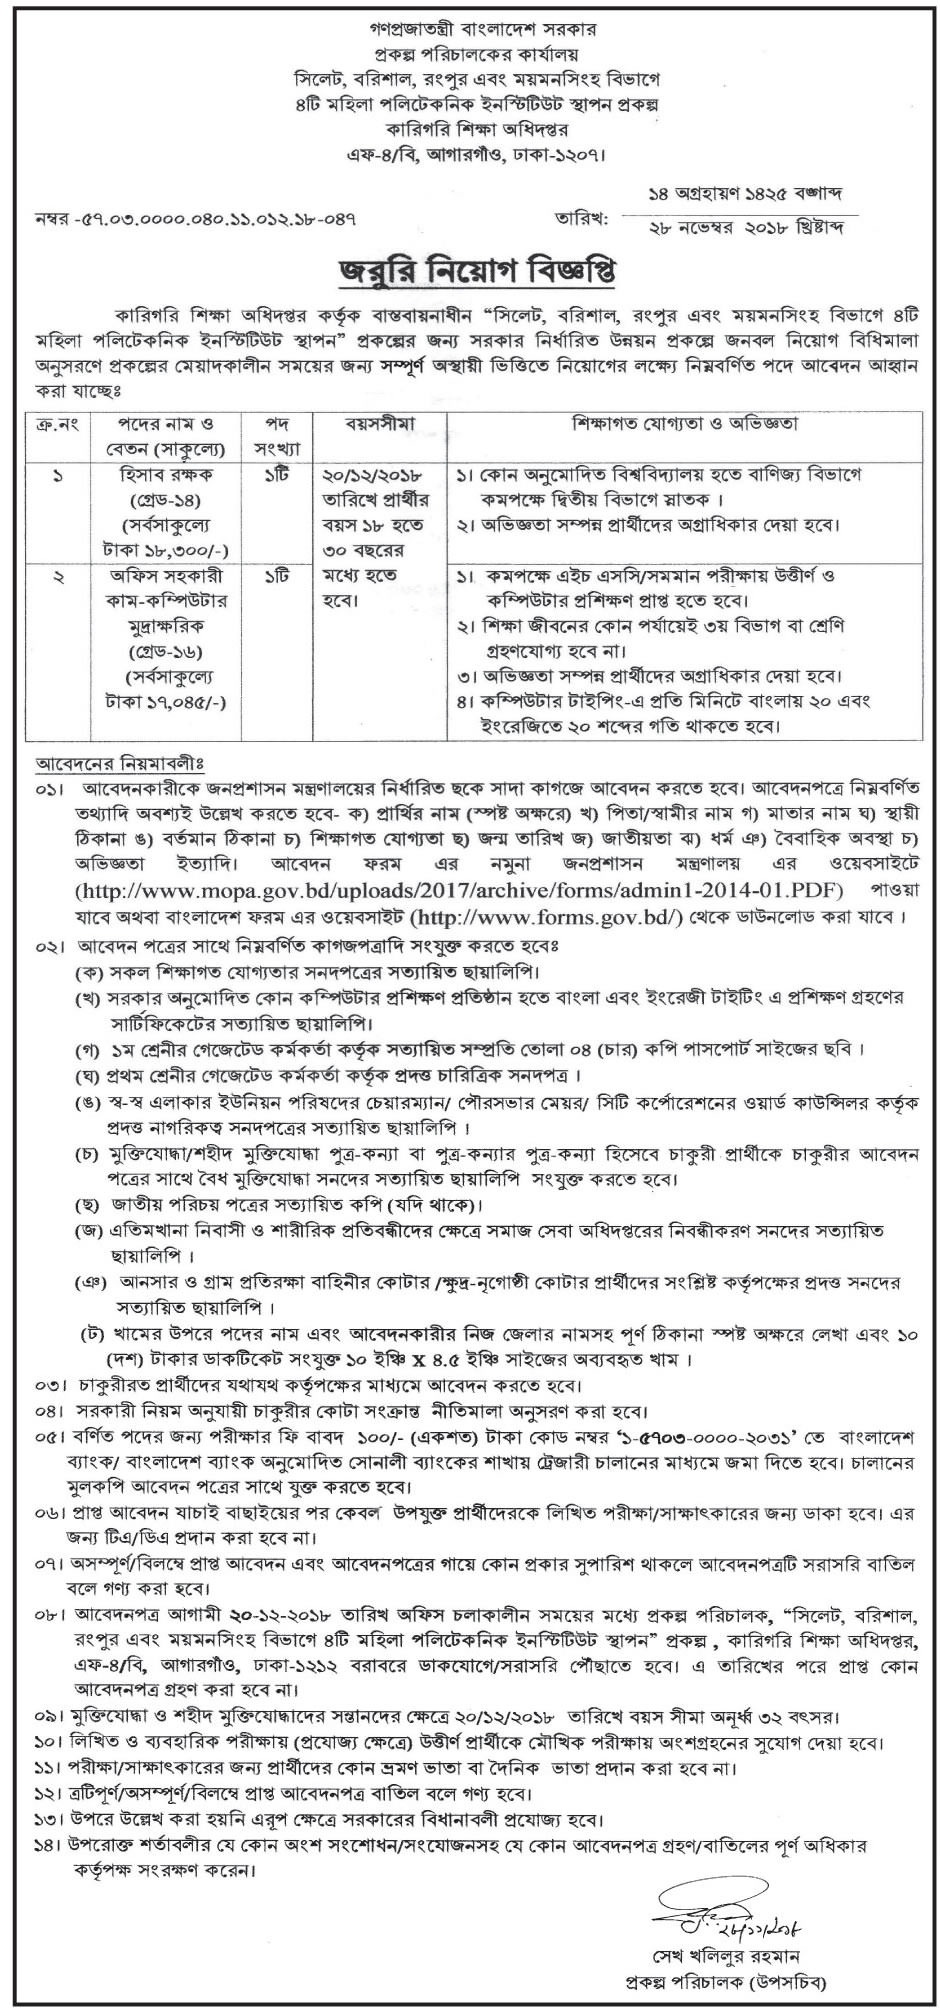 Directorate of Technical Education Job Circular 2018